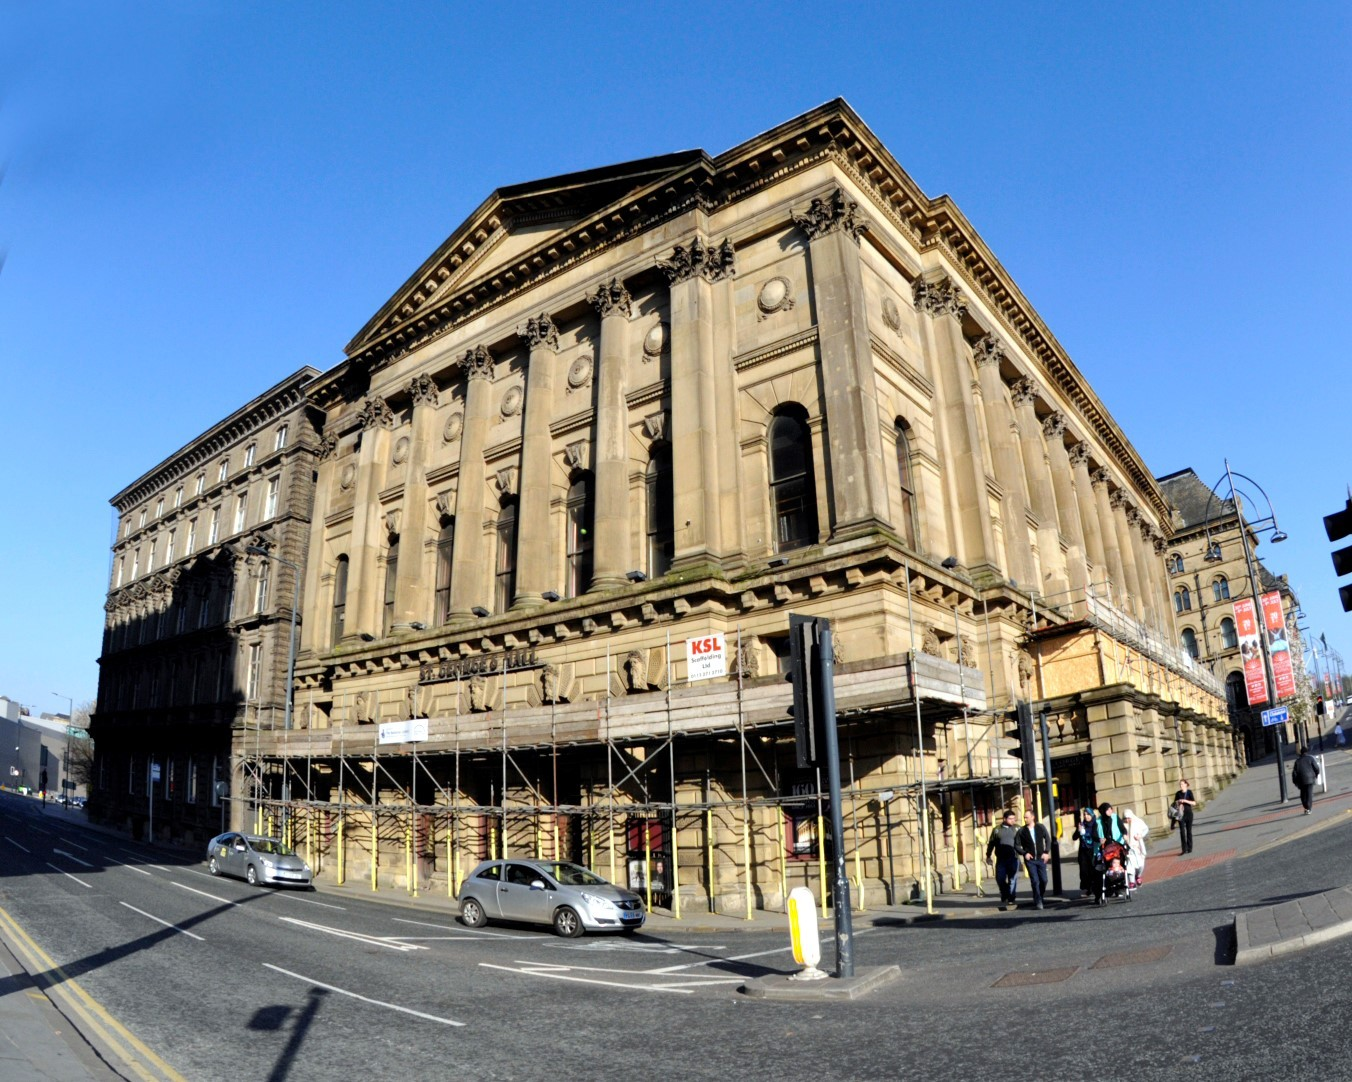 St George's Hall in Bradford